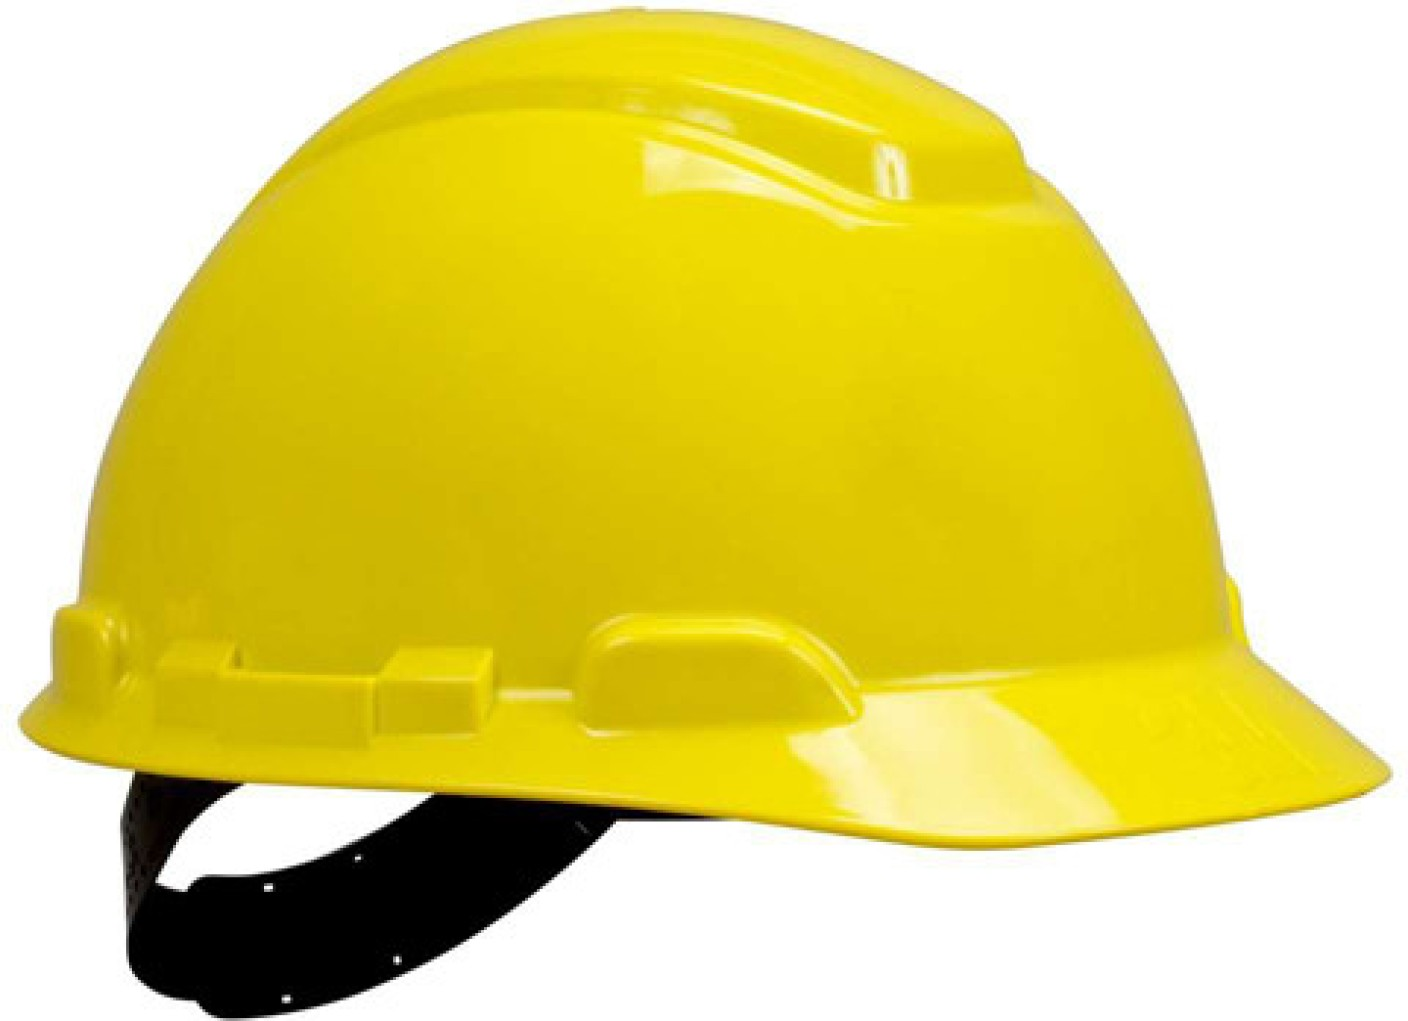 Home Design Online Tool 3m H400 Hard Hat Safety Construction Helmet Price In India